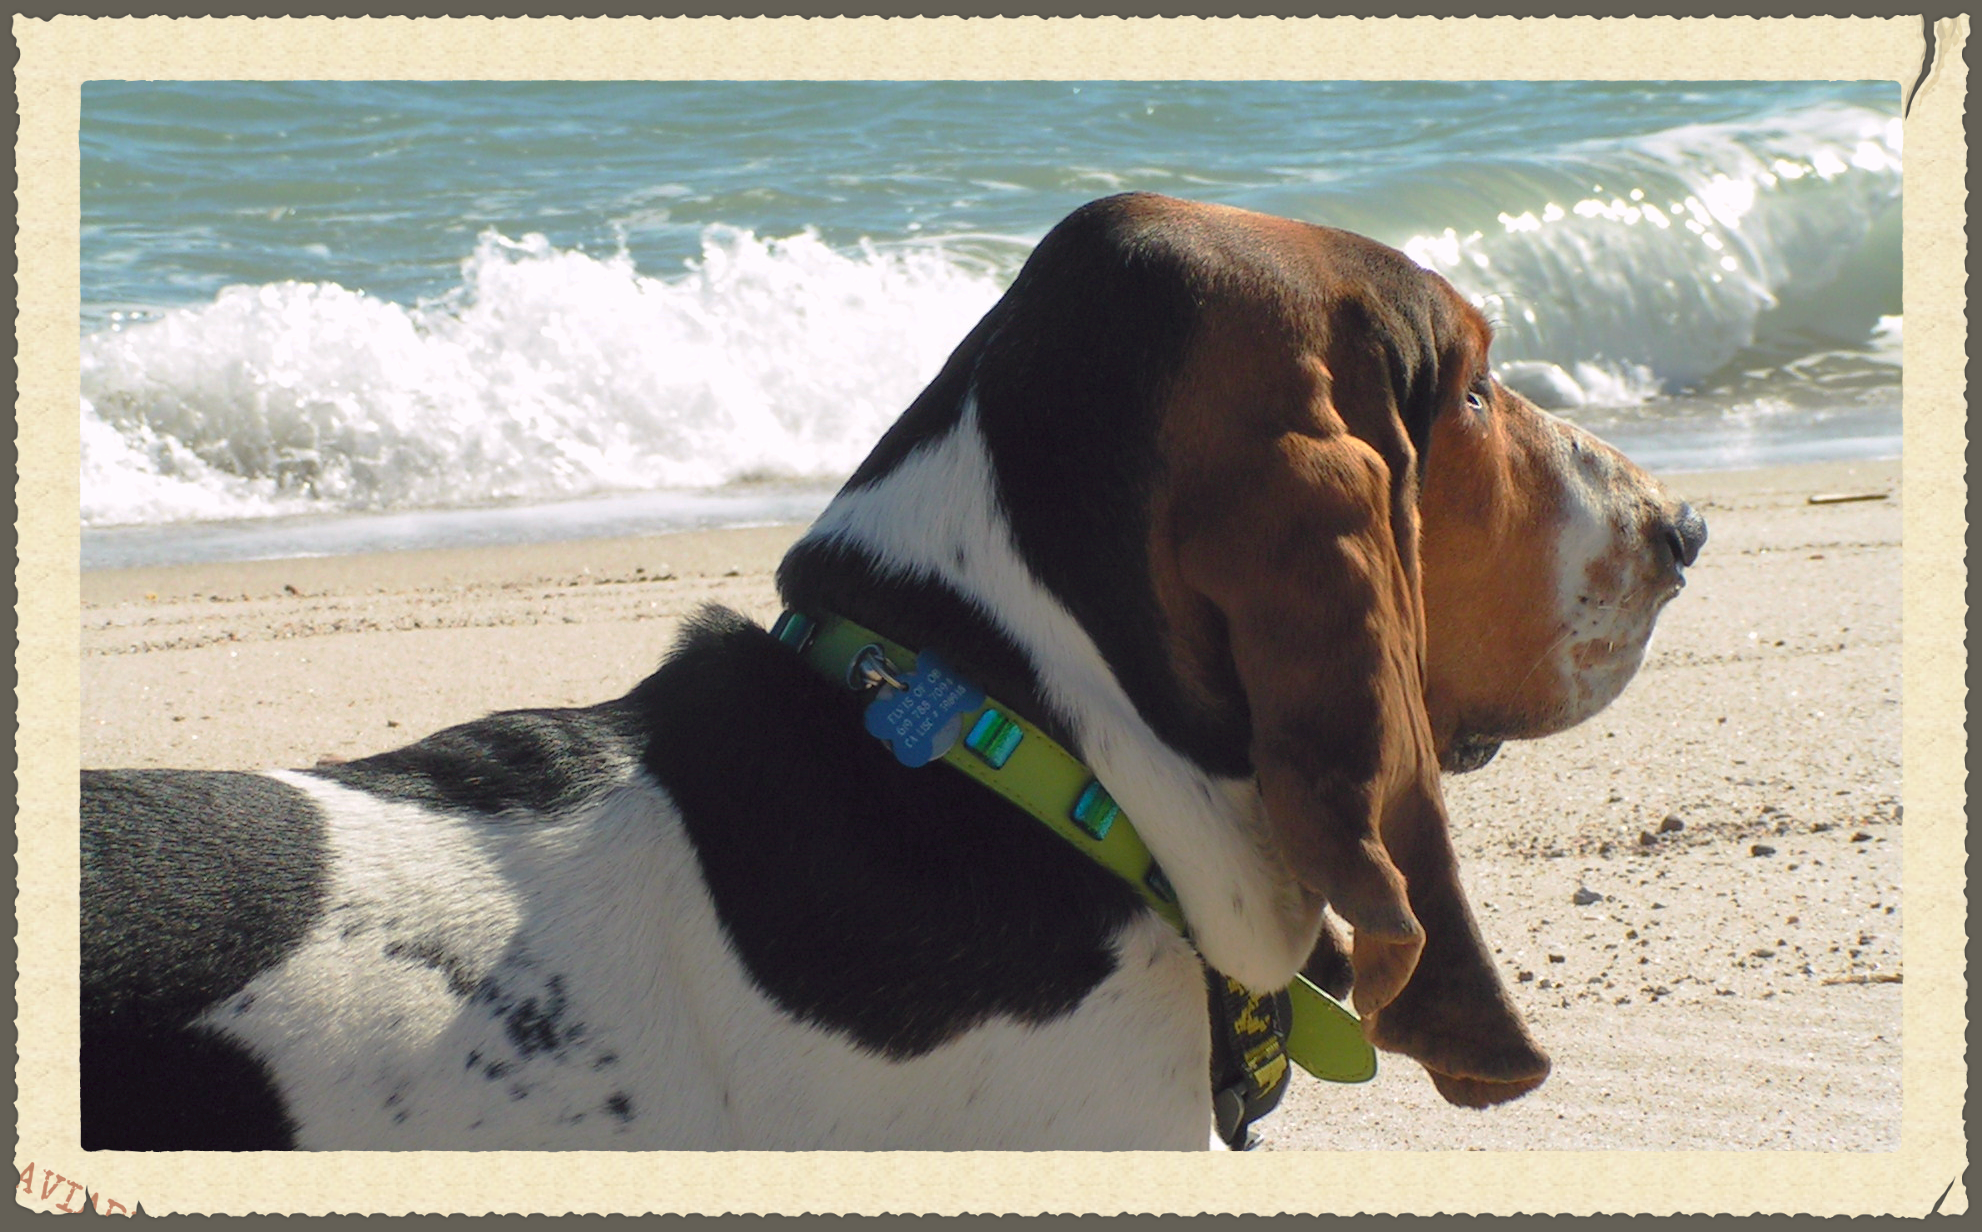 Elvis the surf basset on vacation in Mexico. We're fresh out of pictures of this dog man surfing in England